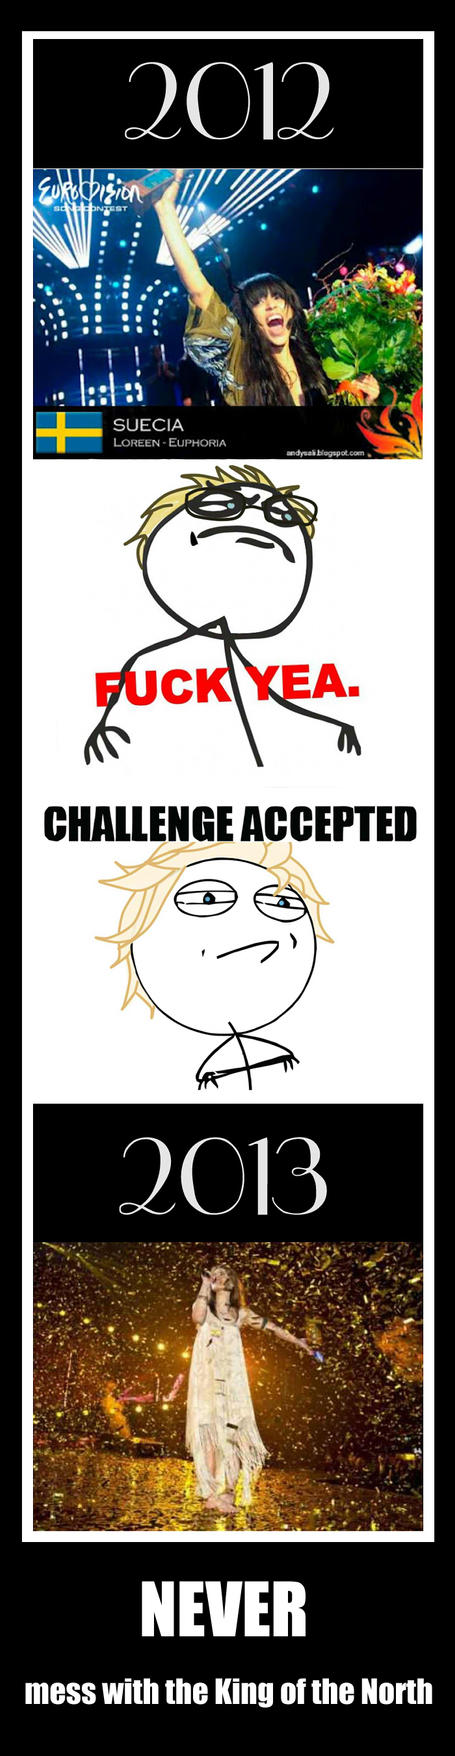 Hetalia motivational - NEVER mess with the King by Nekarim